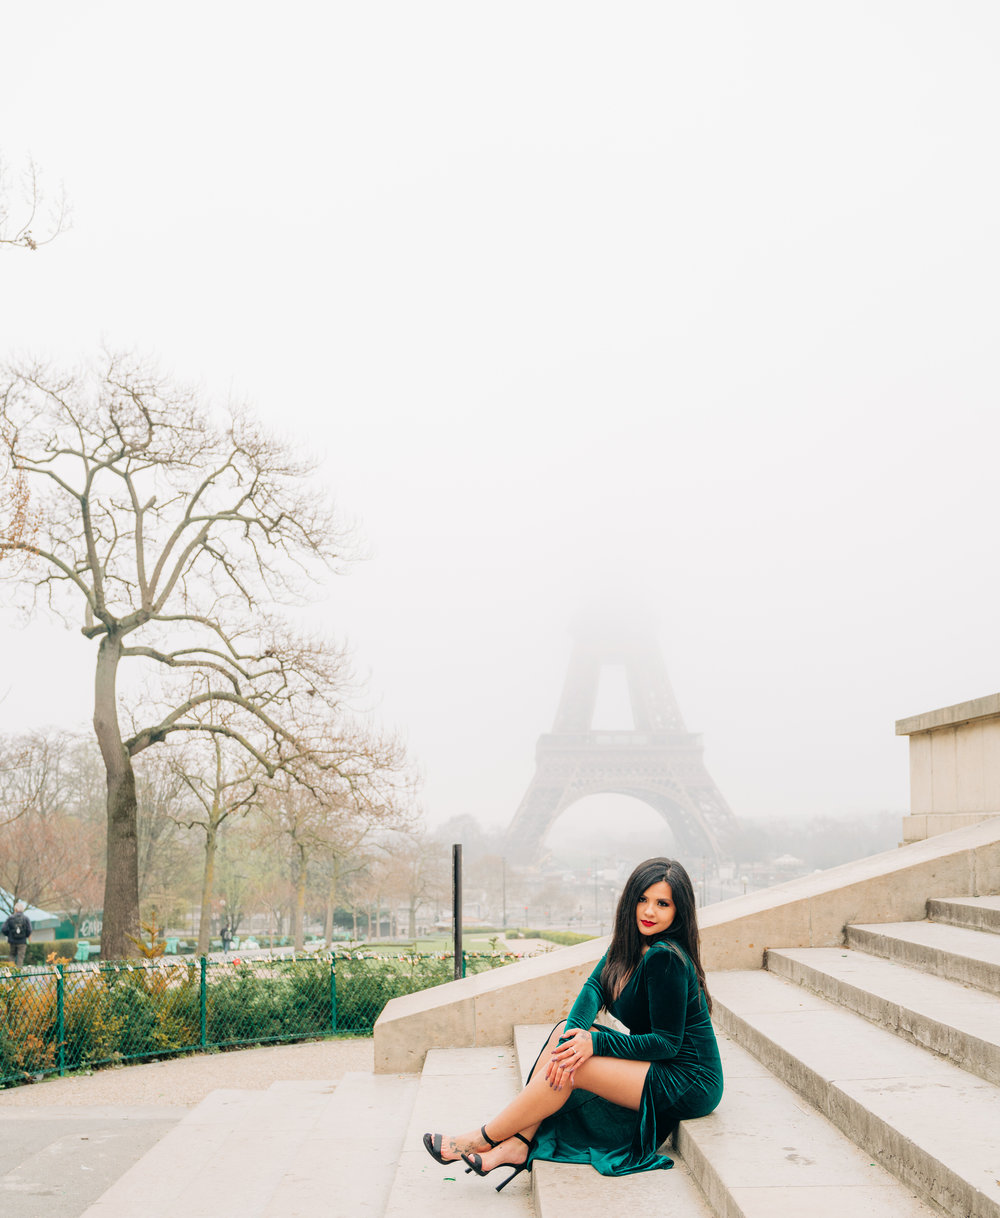 solo traveler photo shoot at the eiffel tower in paris france